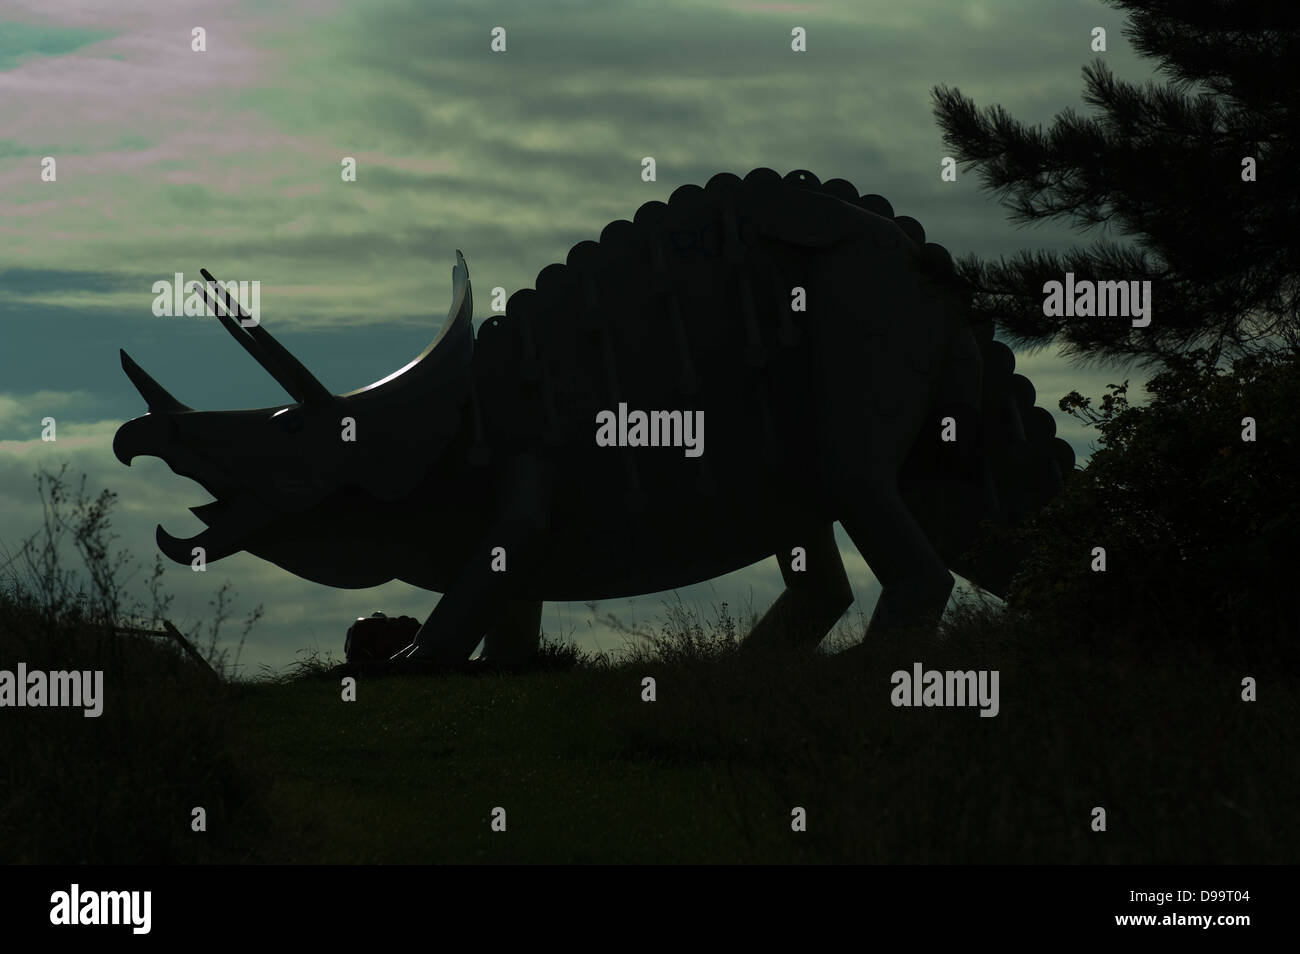 metal dinosaurs in middlesbrough in silhouette - Stock Image